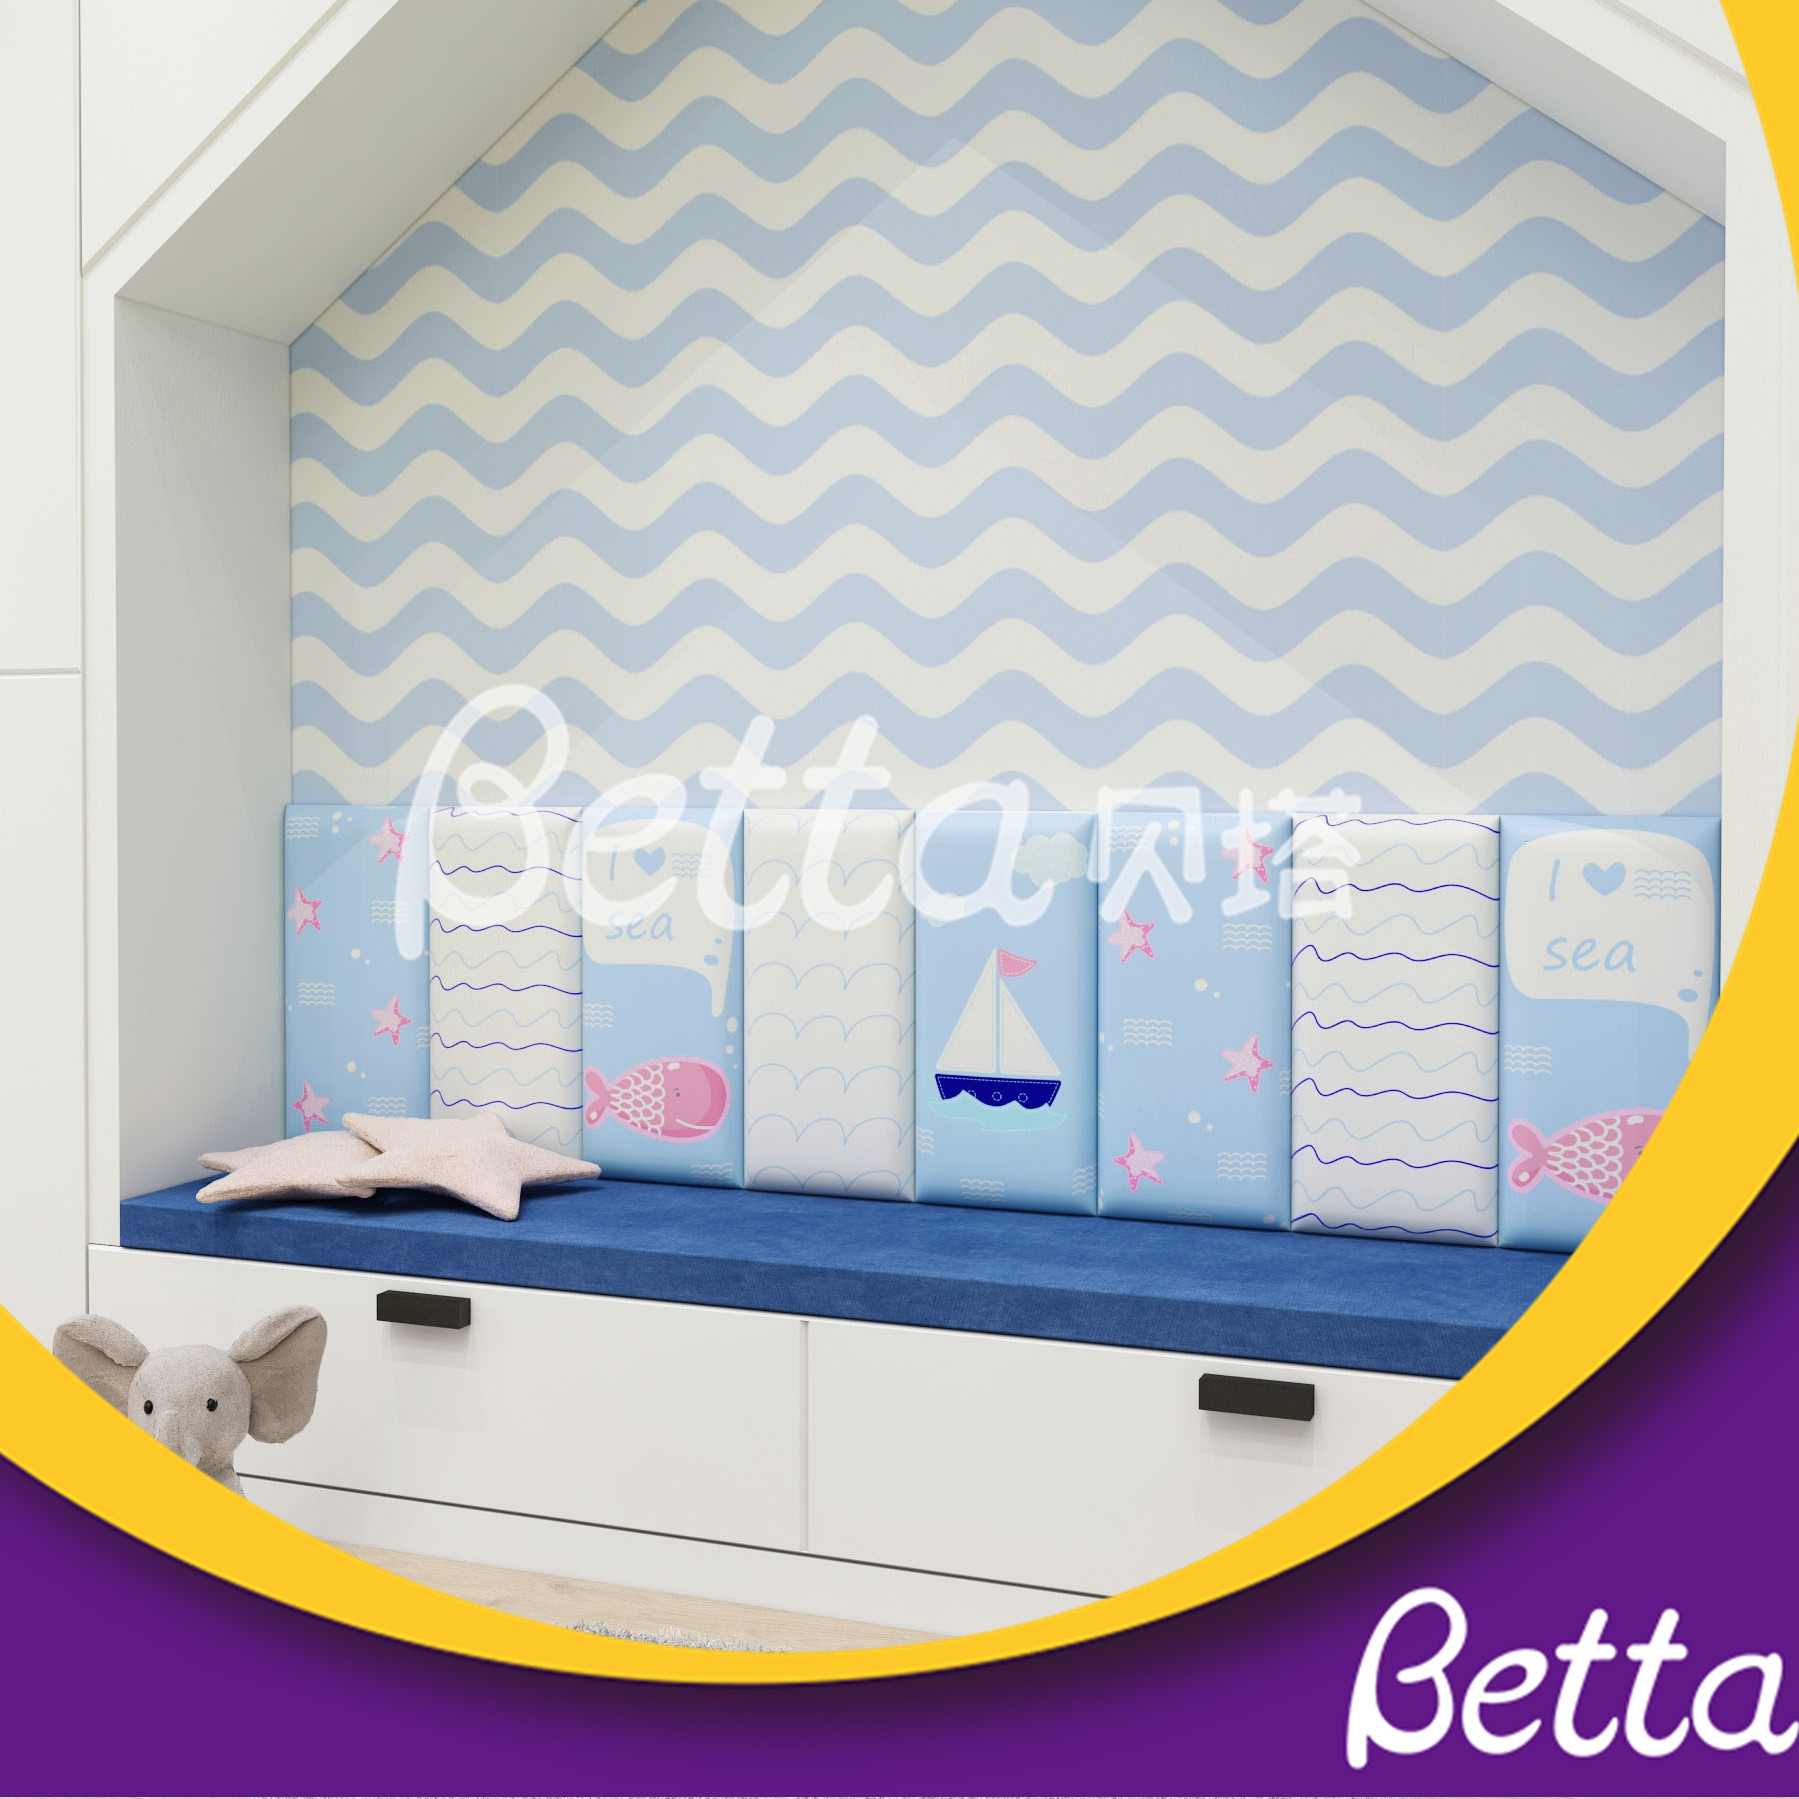 Colorful Soft Wall Customized Sea World Wall for Kids Room Playground